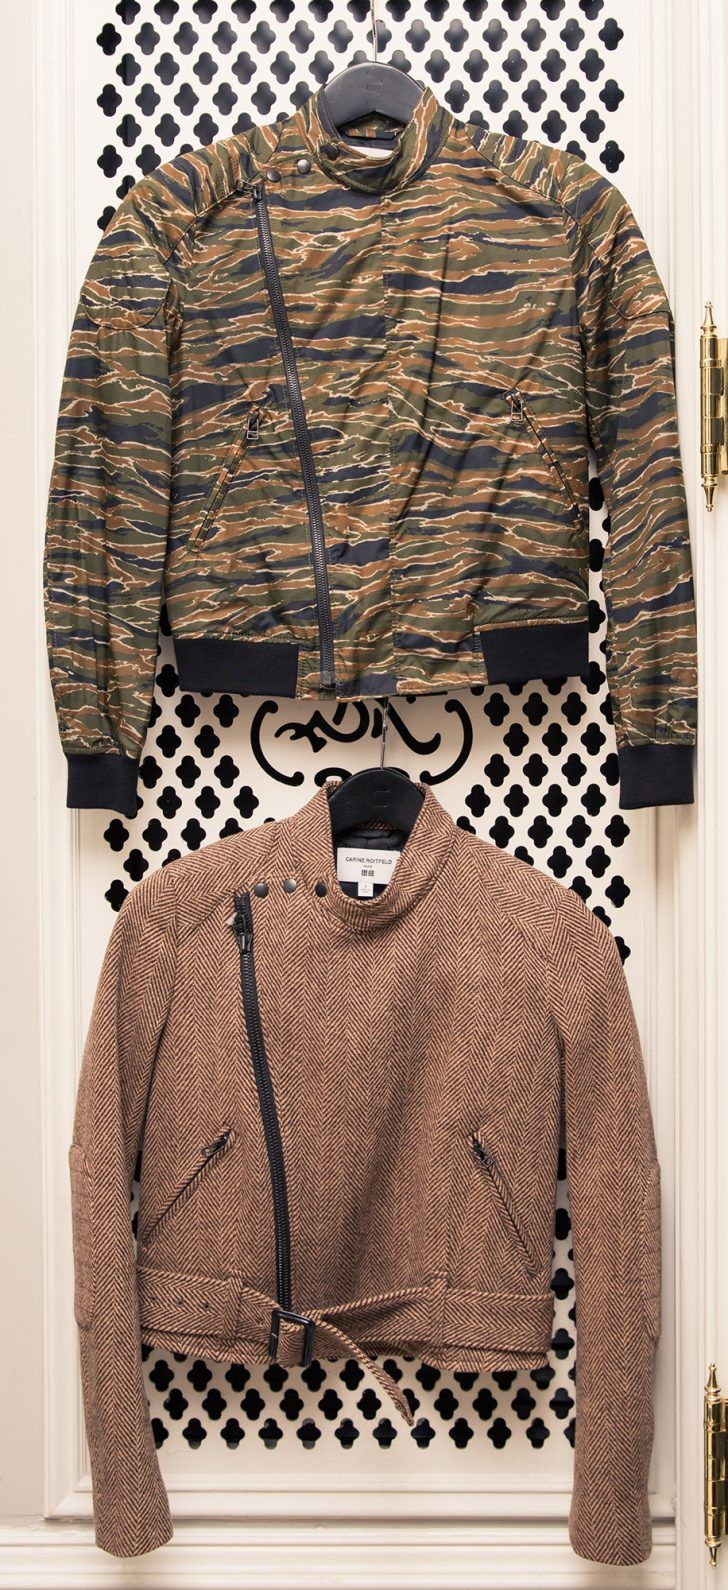 Carine Roitfeld Talks Her New Collection With Uniqlo: Camo printed bomber jacket, cropped tweed jacket with belt   coveteur.com